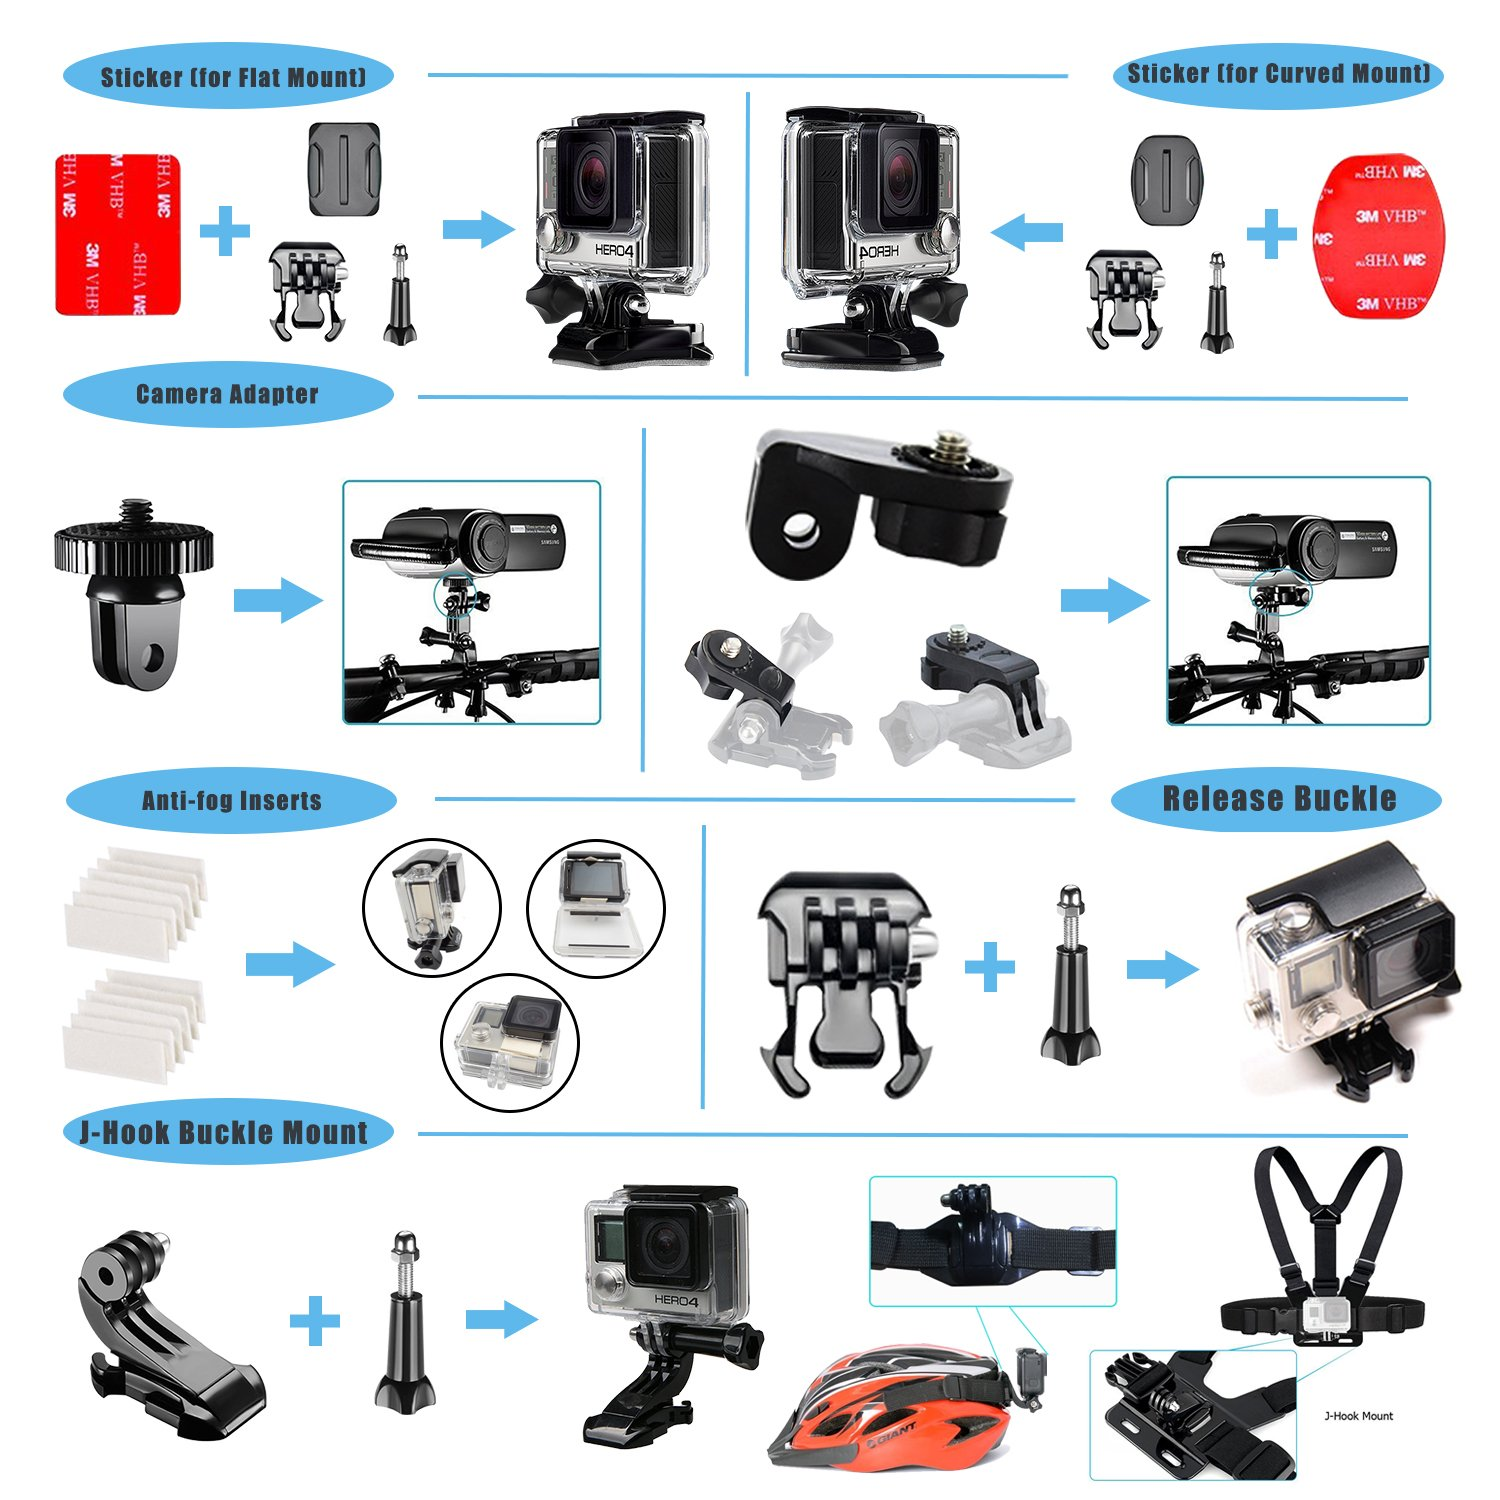 Followsun 62-In-1 Sports Action Camera Accessories Kit for GoPro Hero Session//5 Hero 1 2 3 3 4 5 SJ4000 SJ7000 DBPOWER AKASO VicTsing APEMAN WiMiUS Rollei QUMOX Lightdow Campark And Sony Sports DV